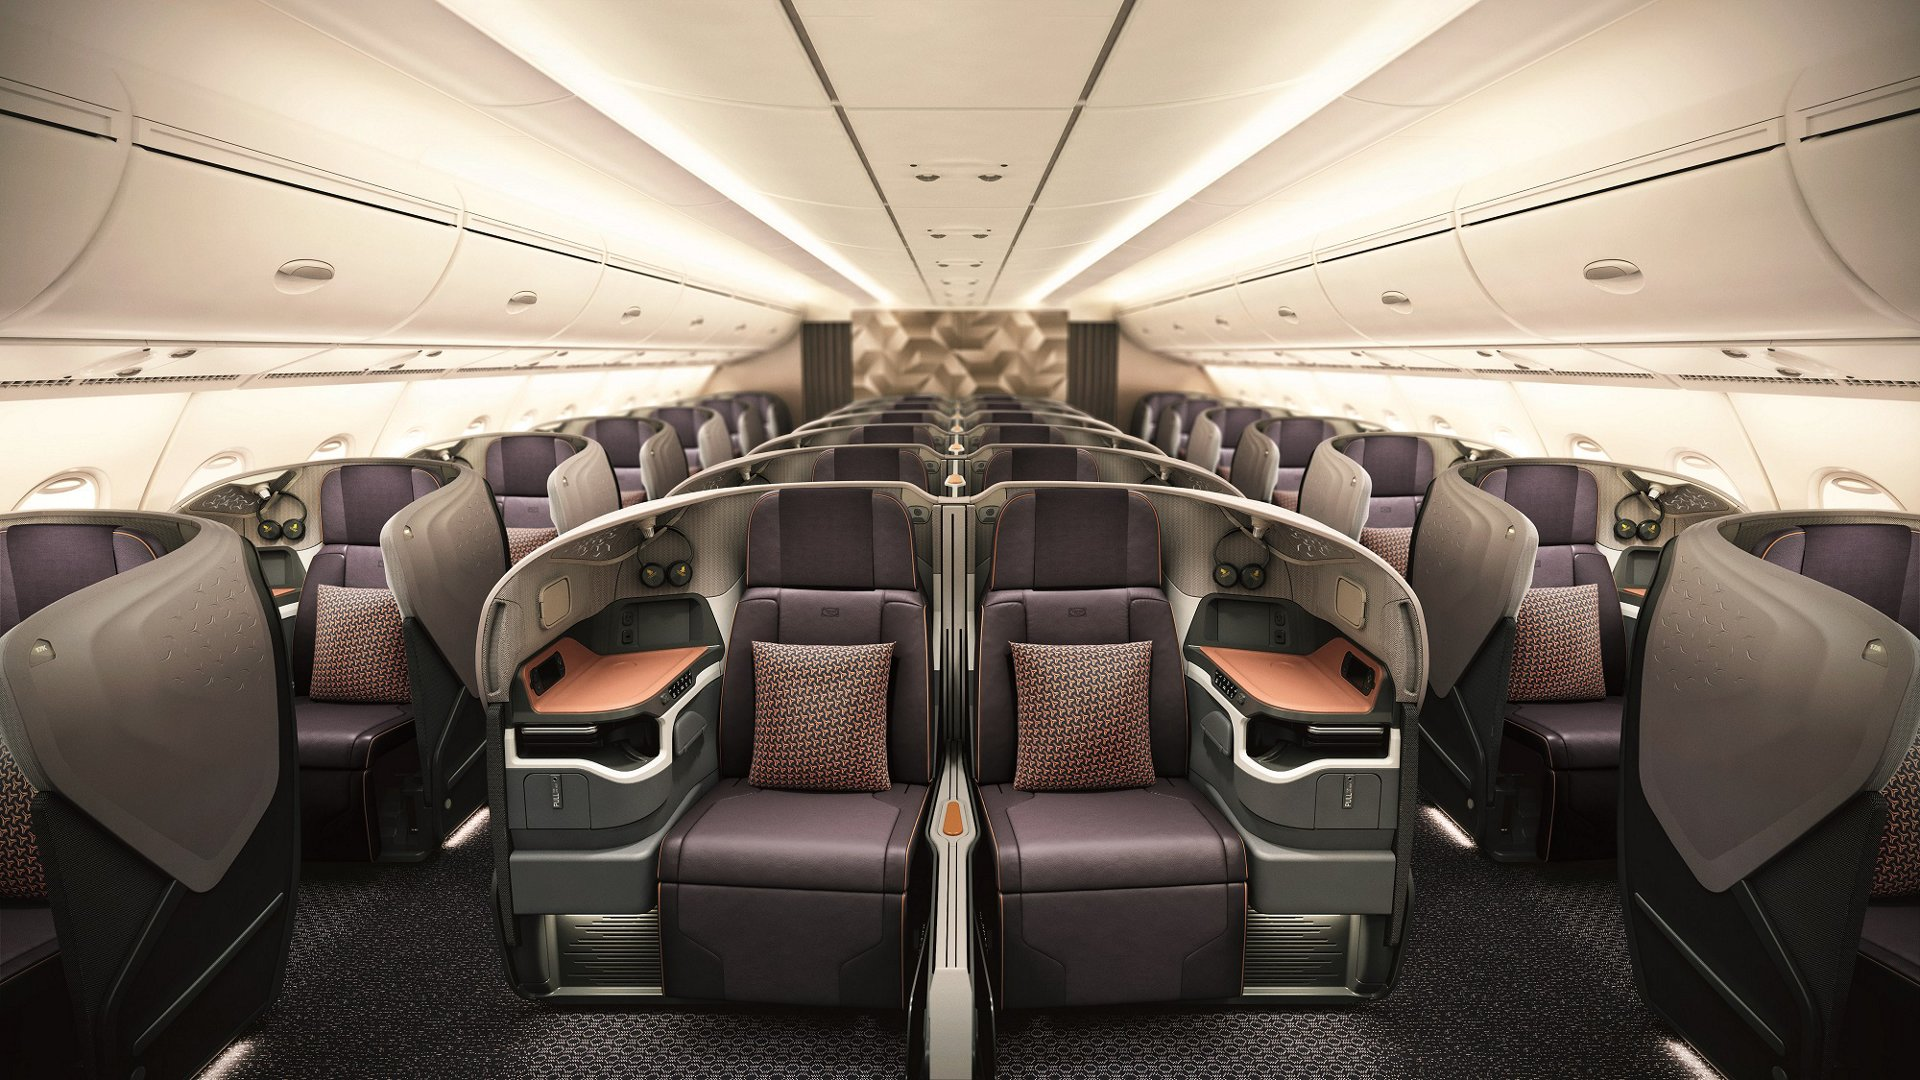 The business class cabin product that has been installed in the retrofitted SIA A380